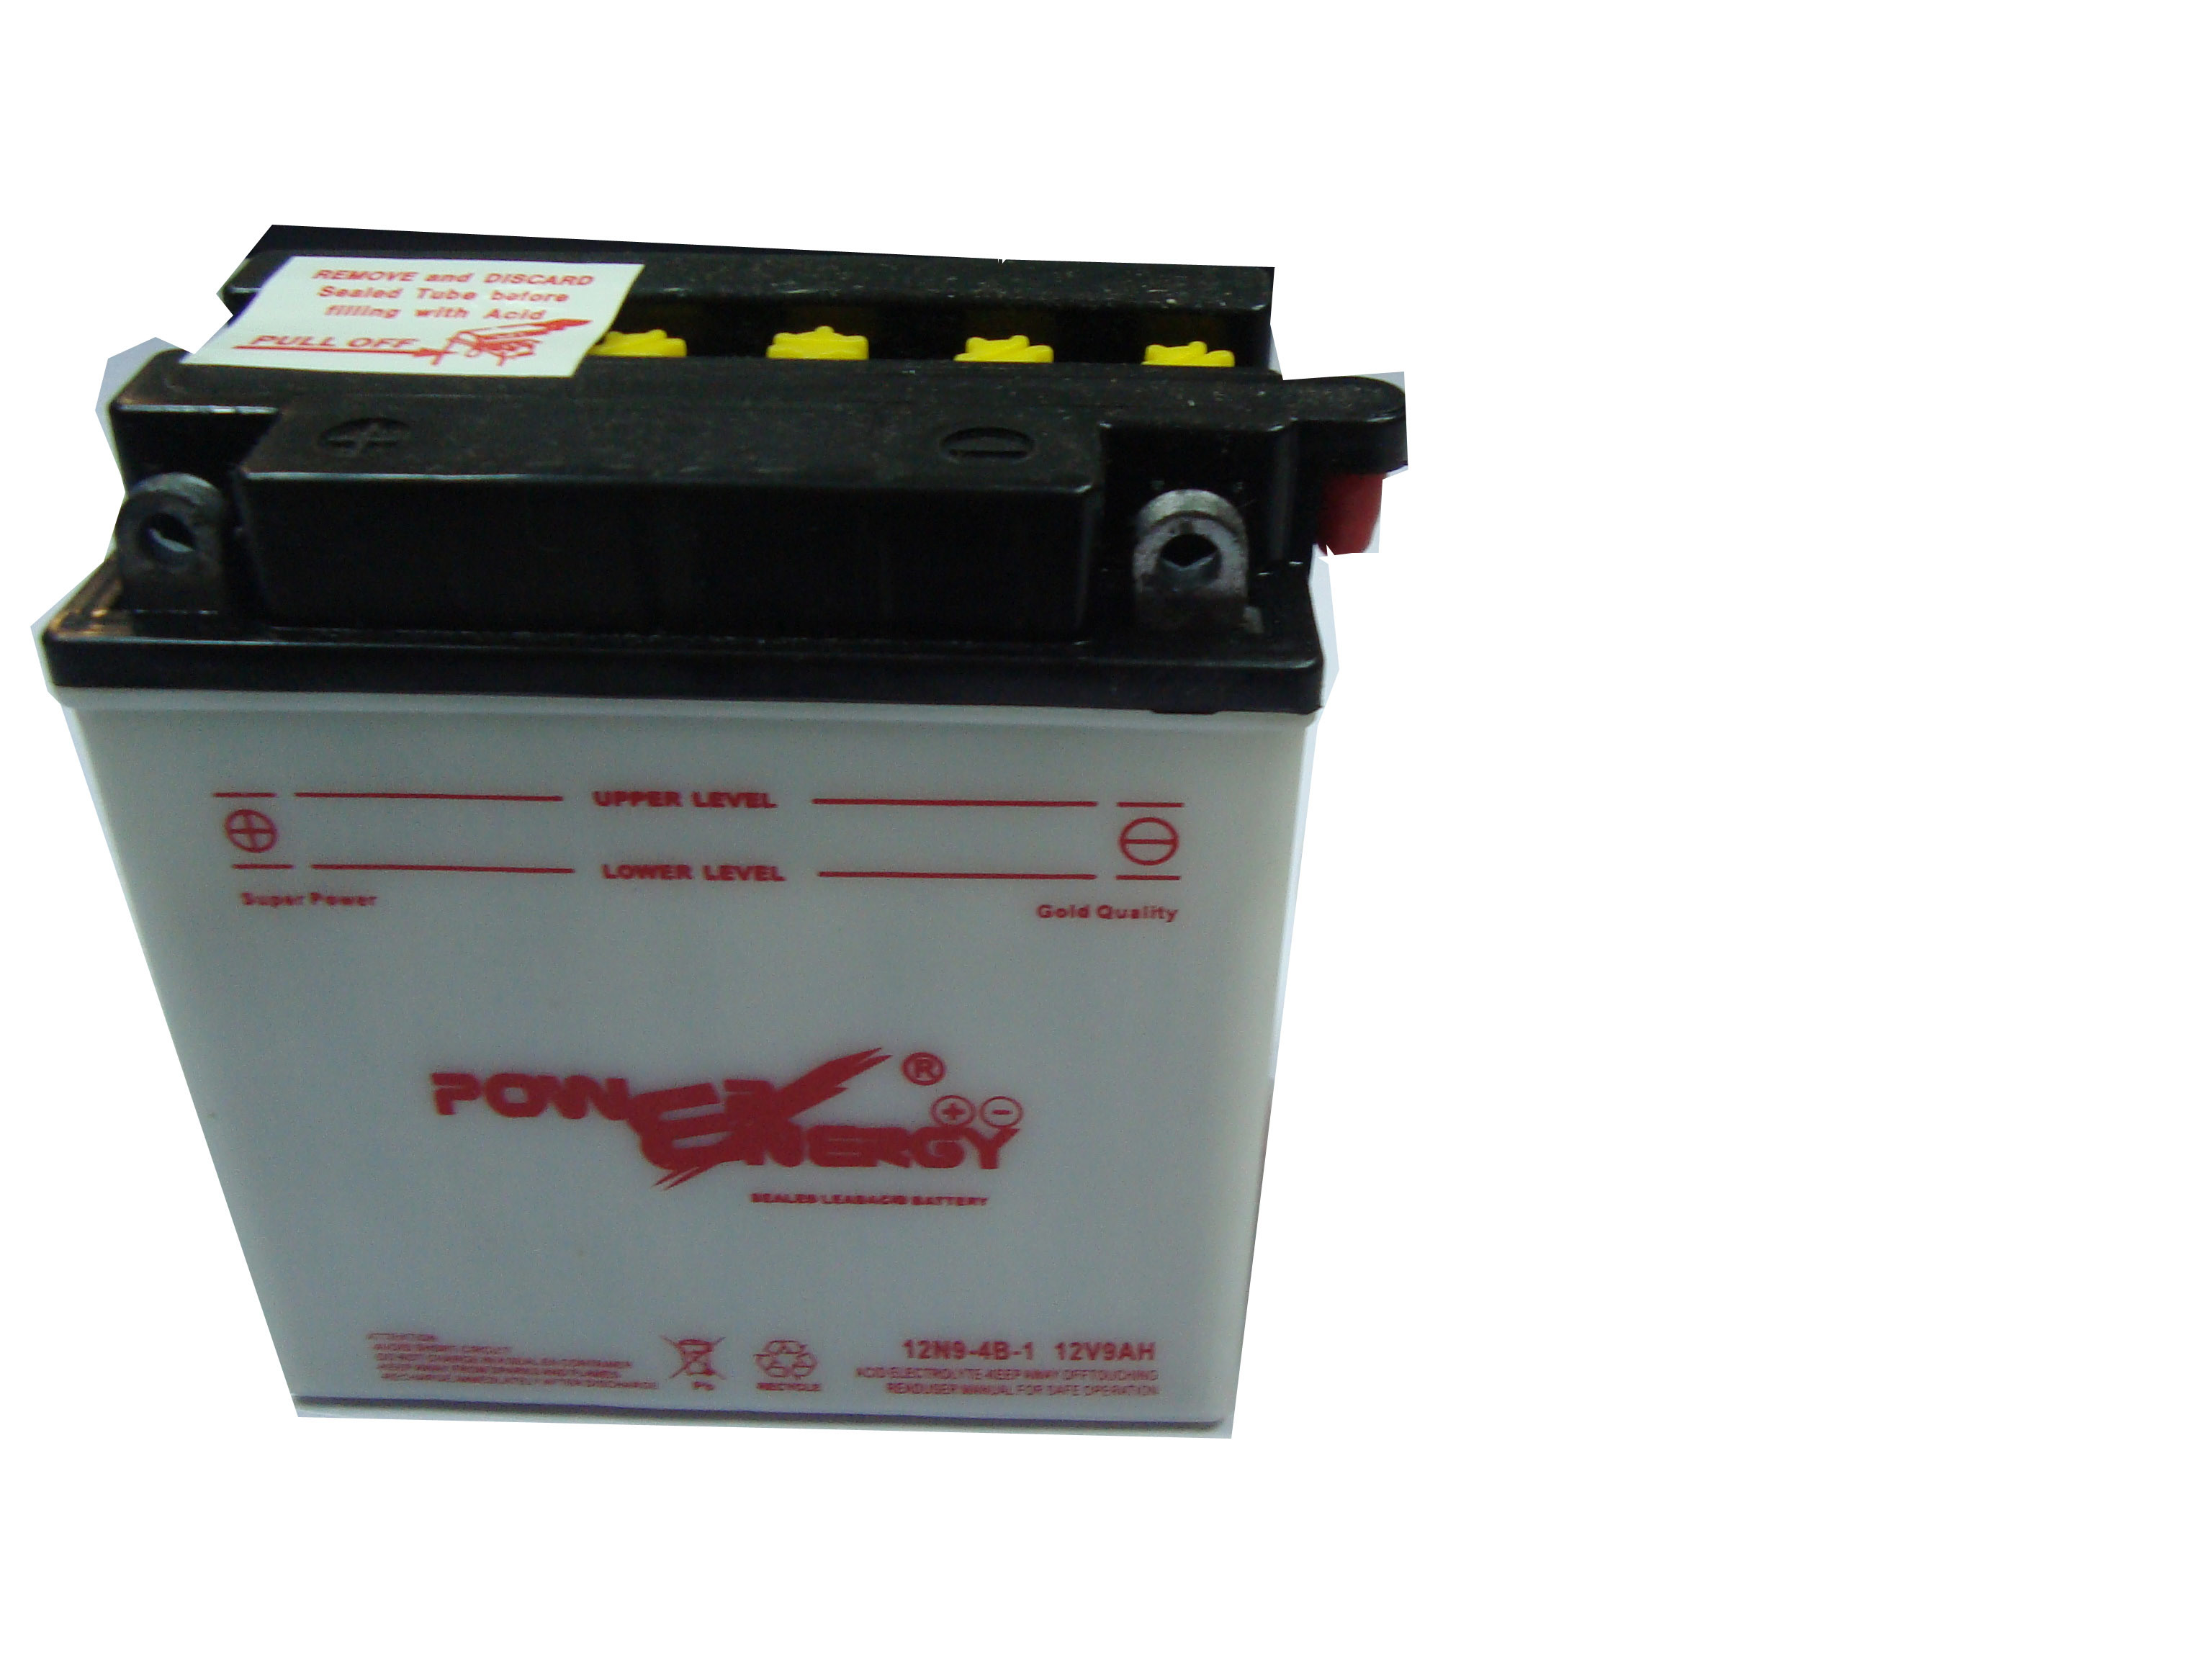 12N9-4B-1 12V9ah Conventional Flooded Lead Acid Dry Charged Motorcycle Battery